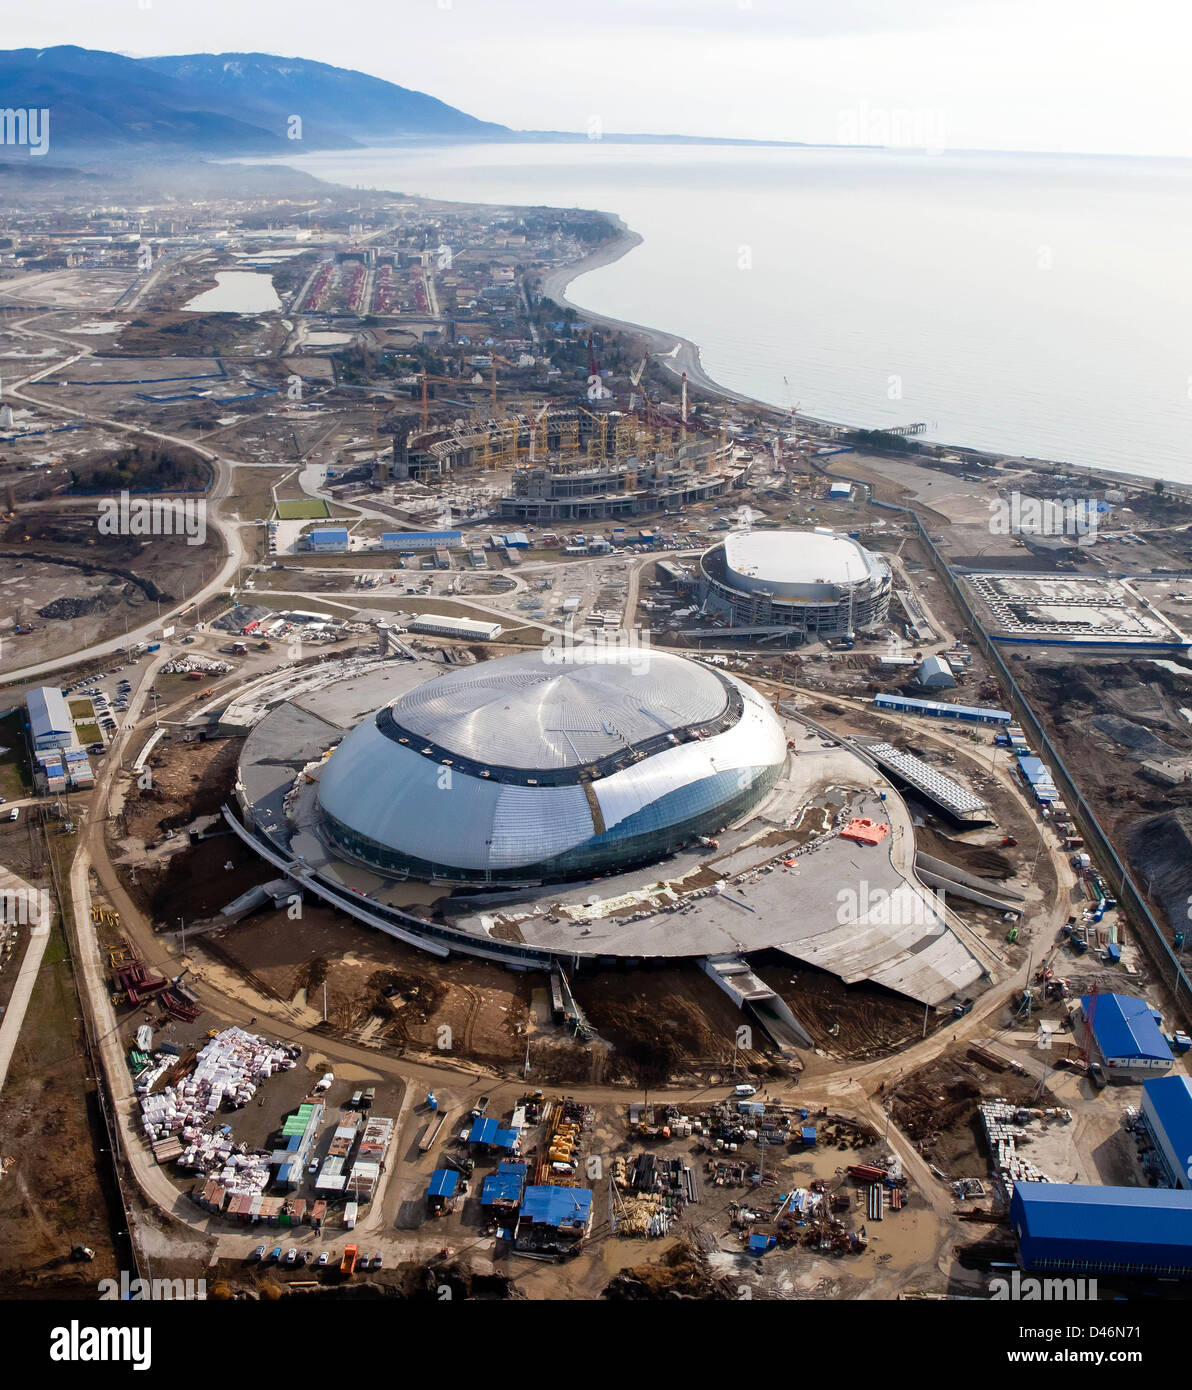 Aerial view of the Olympic Park, DECEMBER 14, 2011 - Olympic Preview : (F-B) The Bolshoy ice dome, the ice hockey - Stock Image